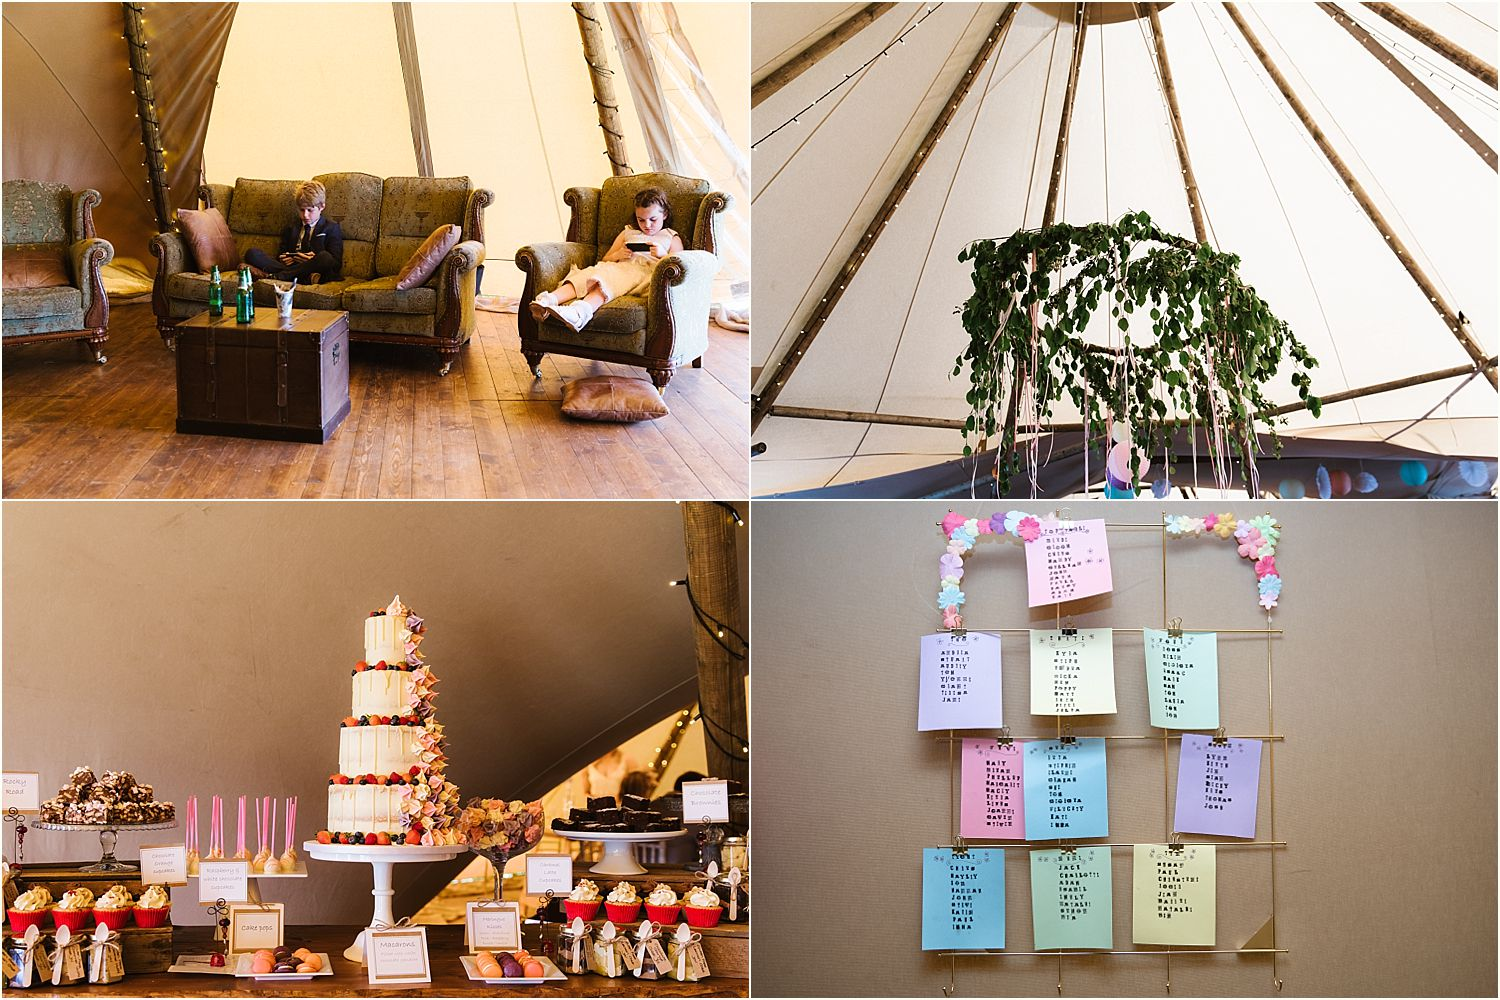 Reception details, inside the tipi from Betty's Tipis of Chorley, cake by Adorable Cakes of Chorley